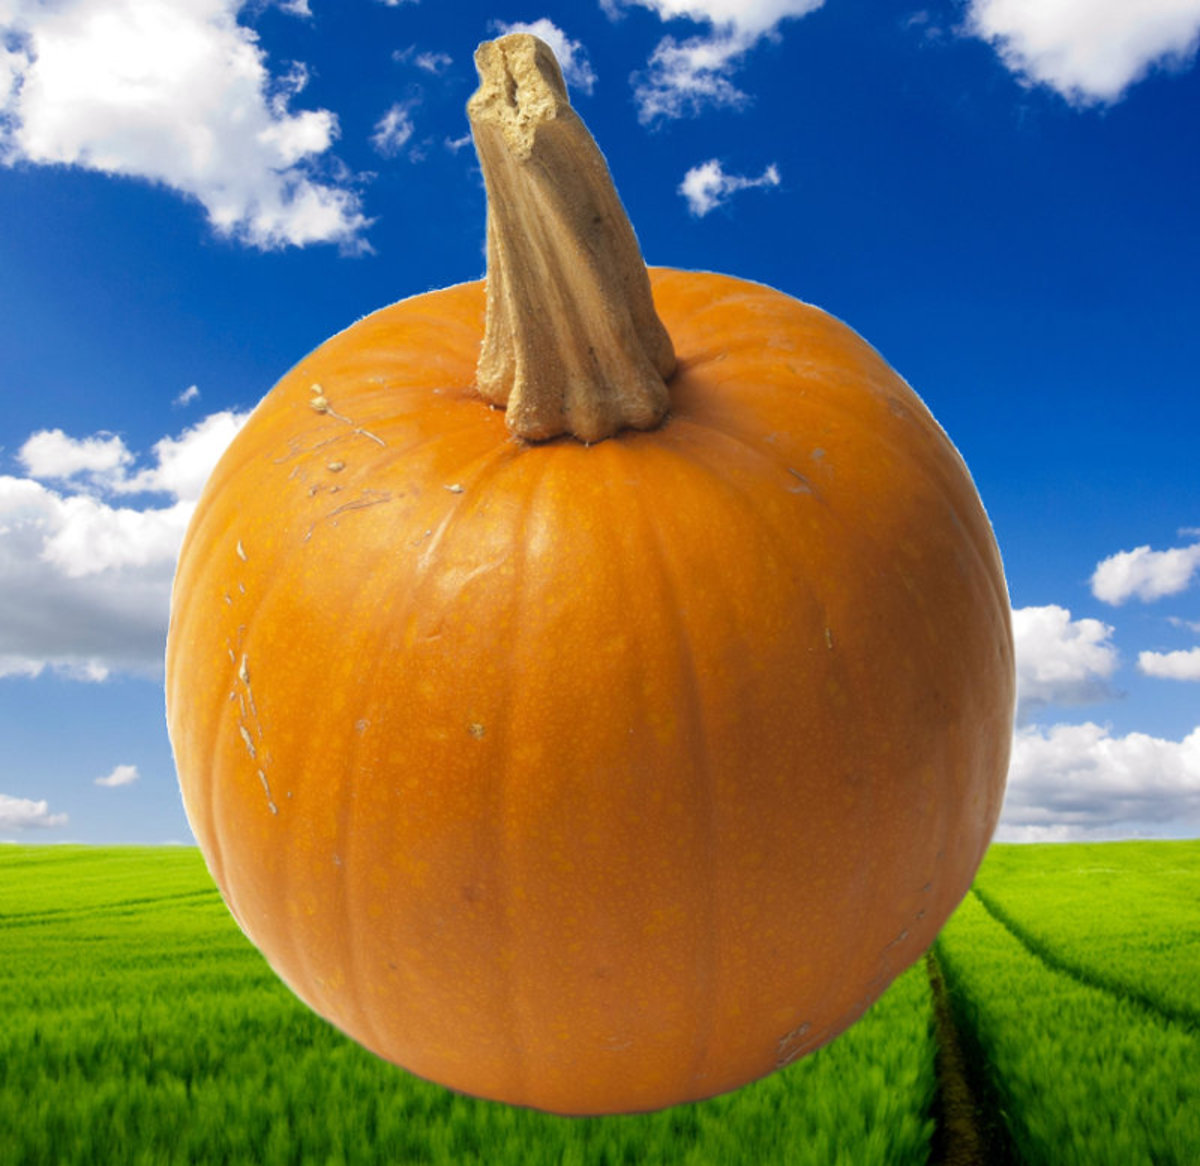 Illustration of pie pumpkin compiled by Robert Kernodle from Creative Commons source images.